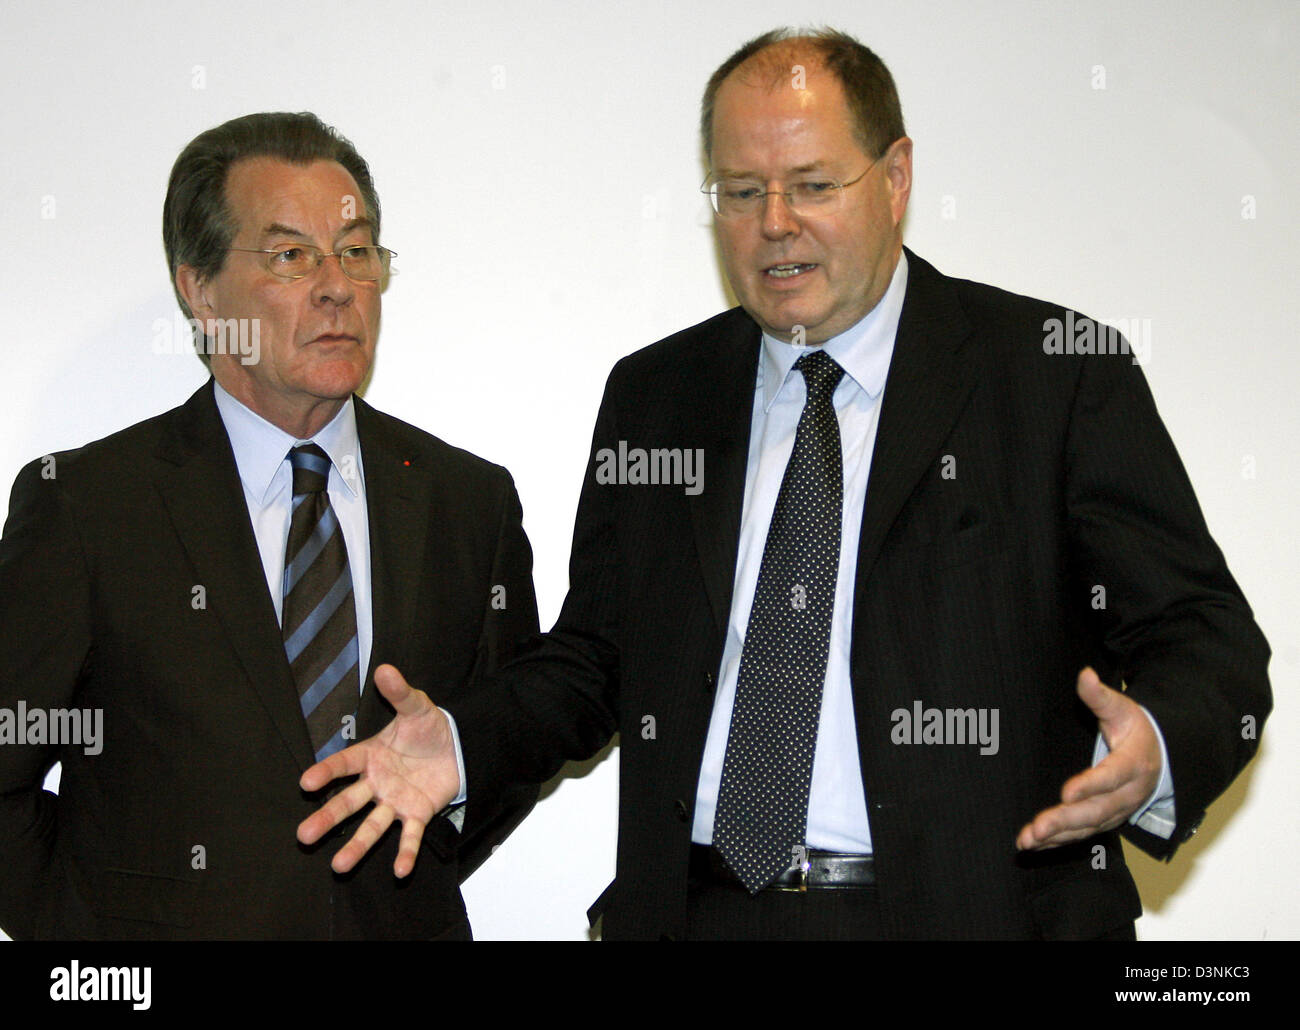 Franz Muentefering (L), German Federal Minister of Labour, and Peer Steinbrueck (R), Minister of Finance, talk to - Stock Image